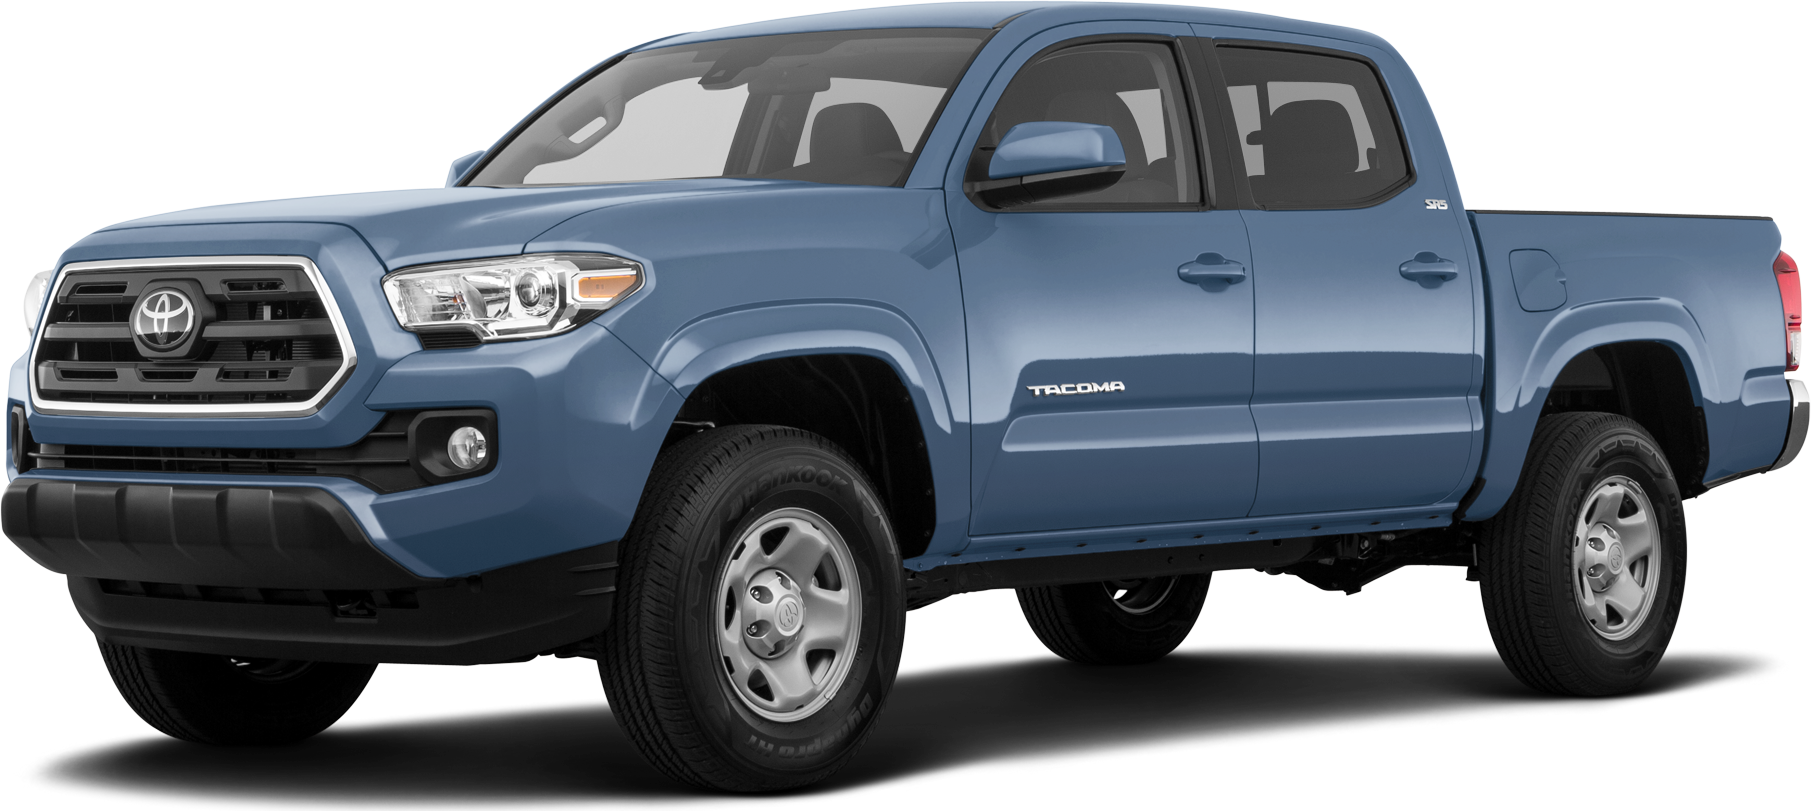 Blue Toyota Tacoma >> 2018 Toyota Tacoma Pricing Reviews Ratings Kelley Blue Book